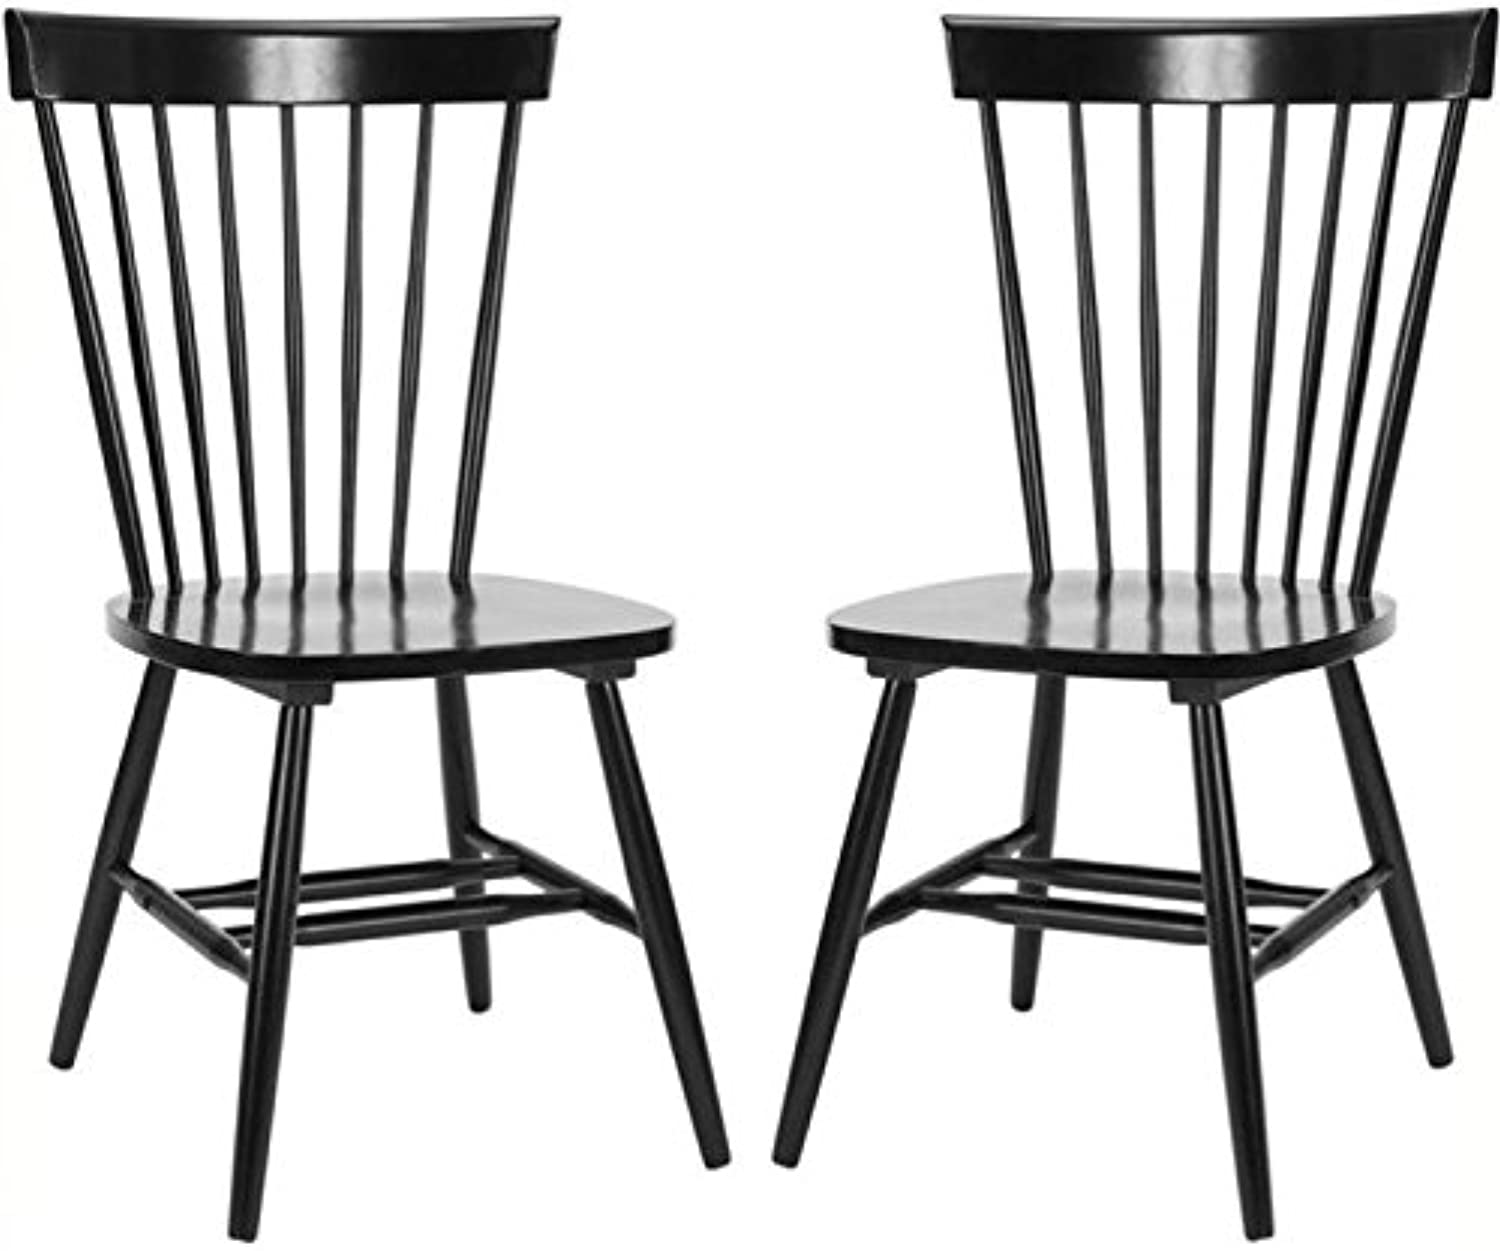 Pemberly Row Traditional Dining Side Chair in Black (Set of 2)